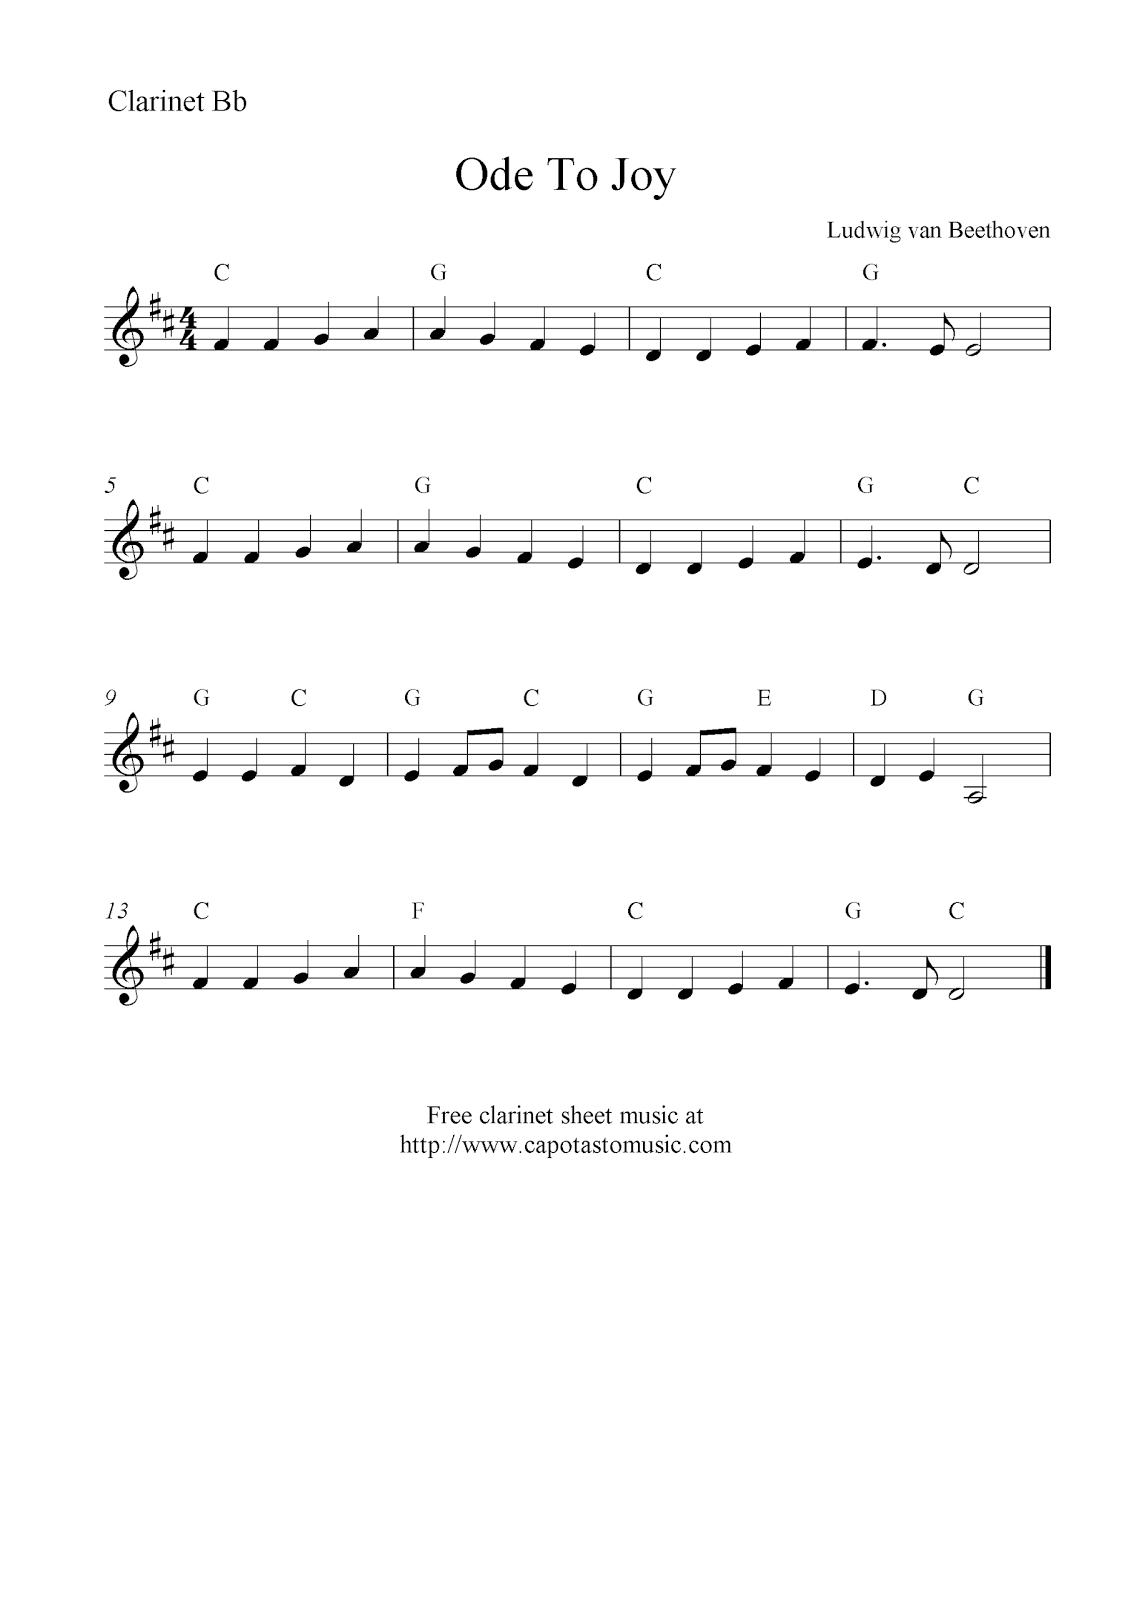 Ode To Joybeethoven, Free Clarinet Sheet Music Notes - Free Sheet Music For Clarinet Printable